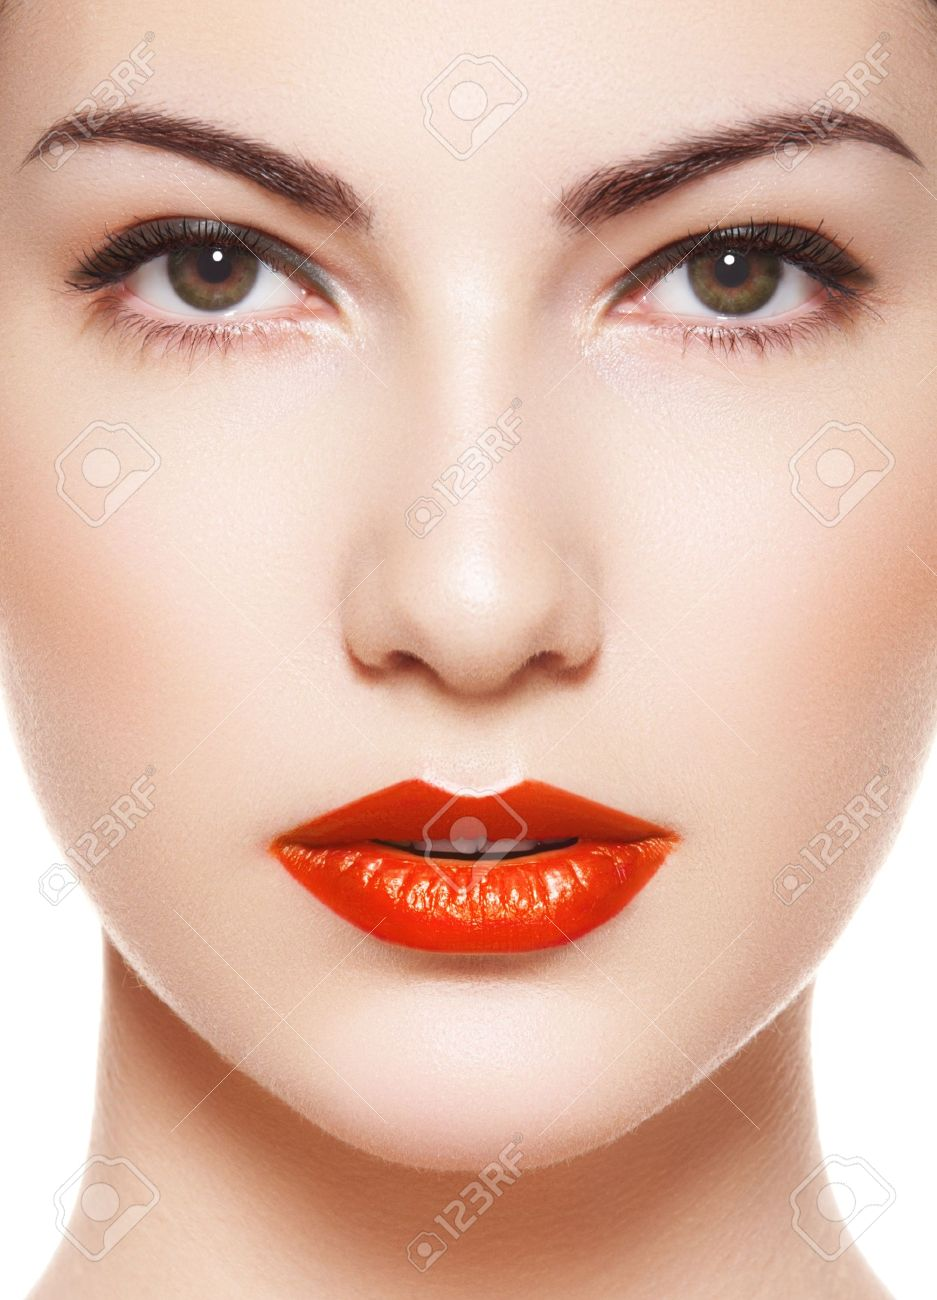 Cute model face with bright evening make-up, orange lipstick, purity skin on white background Stock Photo - 11572483